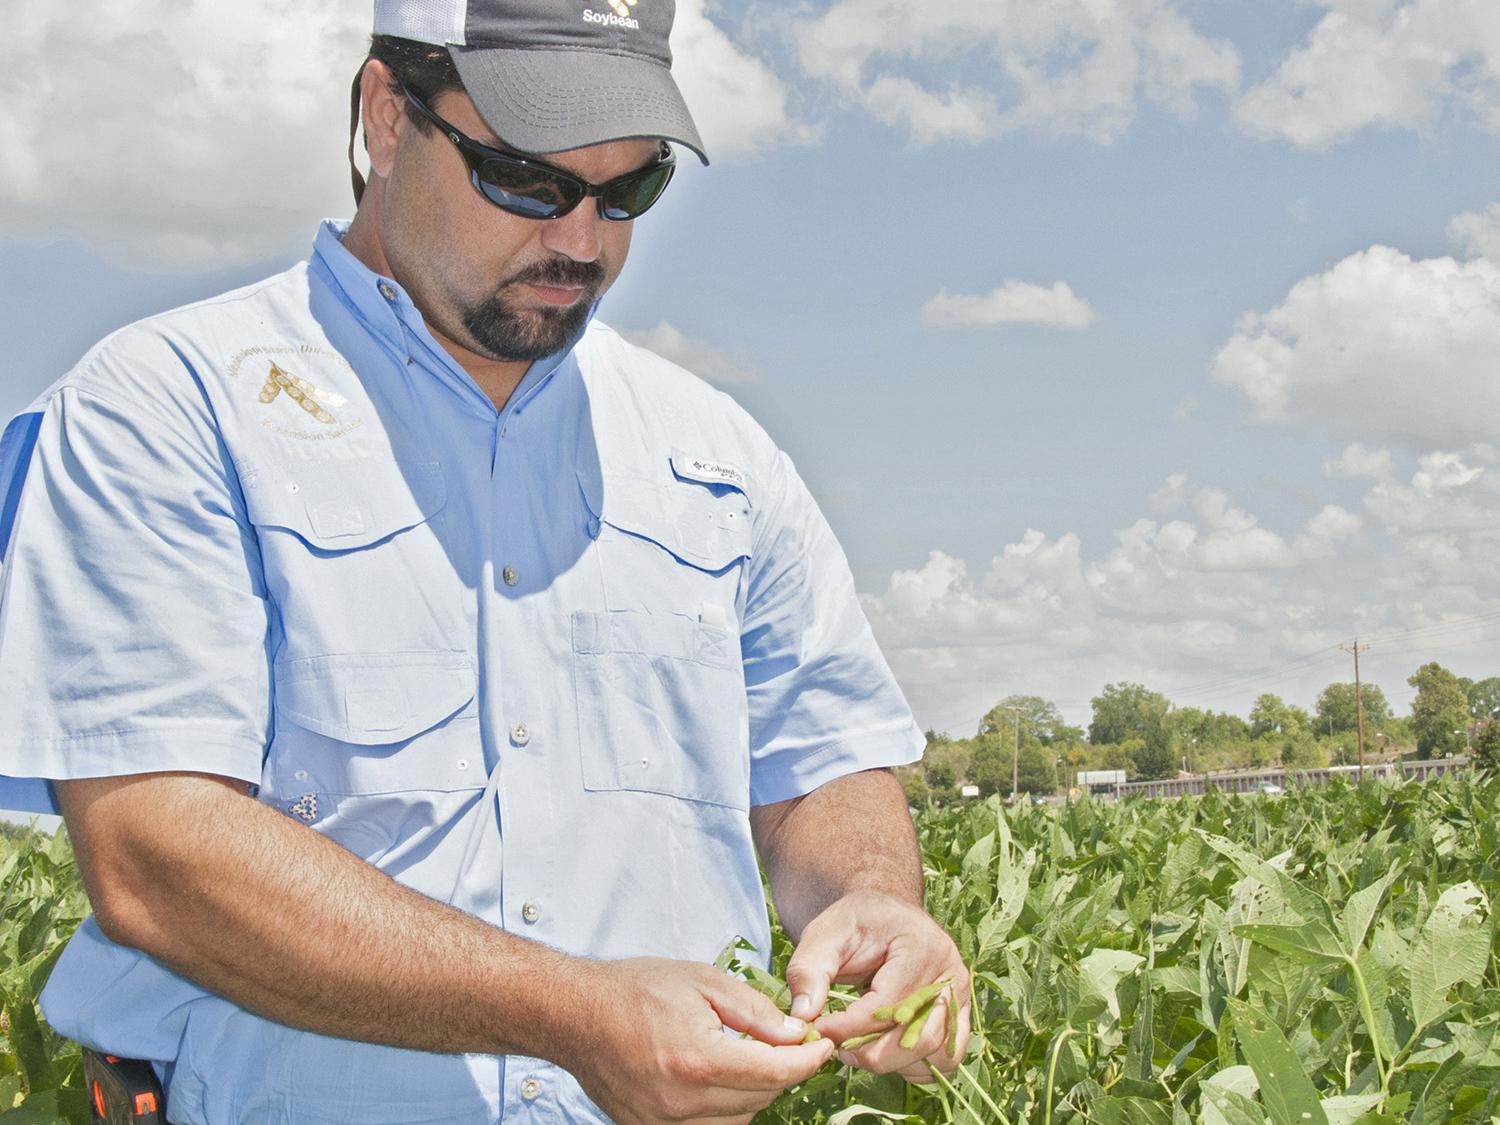 Trent Irby, Mississippi State University Extension Service soybean specialist, checks the maturity stage of soybeans planted at the R.R. Foil Research Center on the MSU campus Aug. 21, 2014. Mississippi soybean growers are expected to harvest a record yield this year. (Photo by MSU Ag Communications/Kat Lawrence)